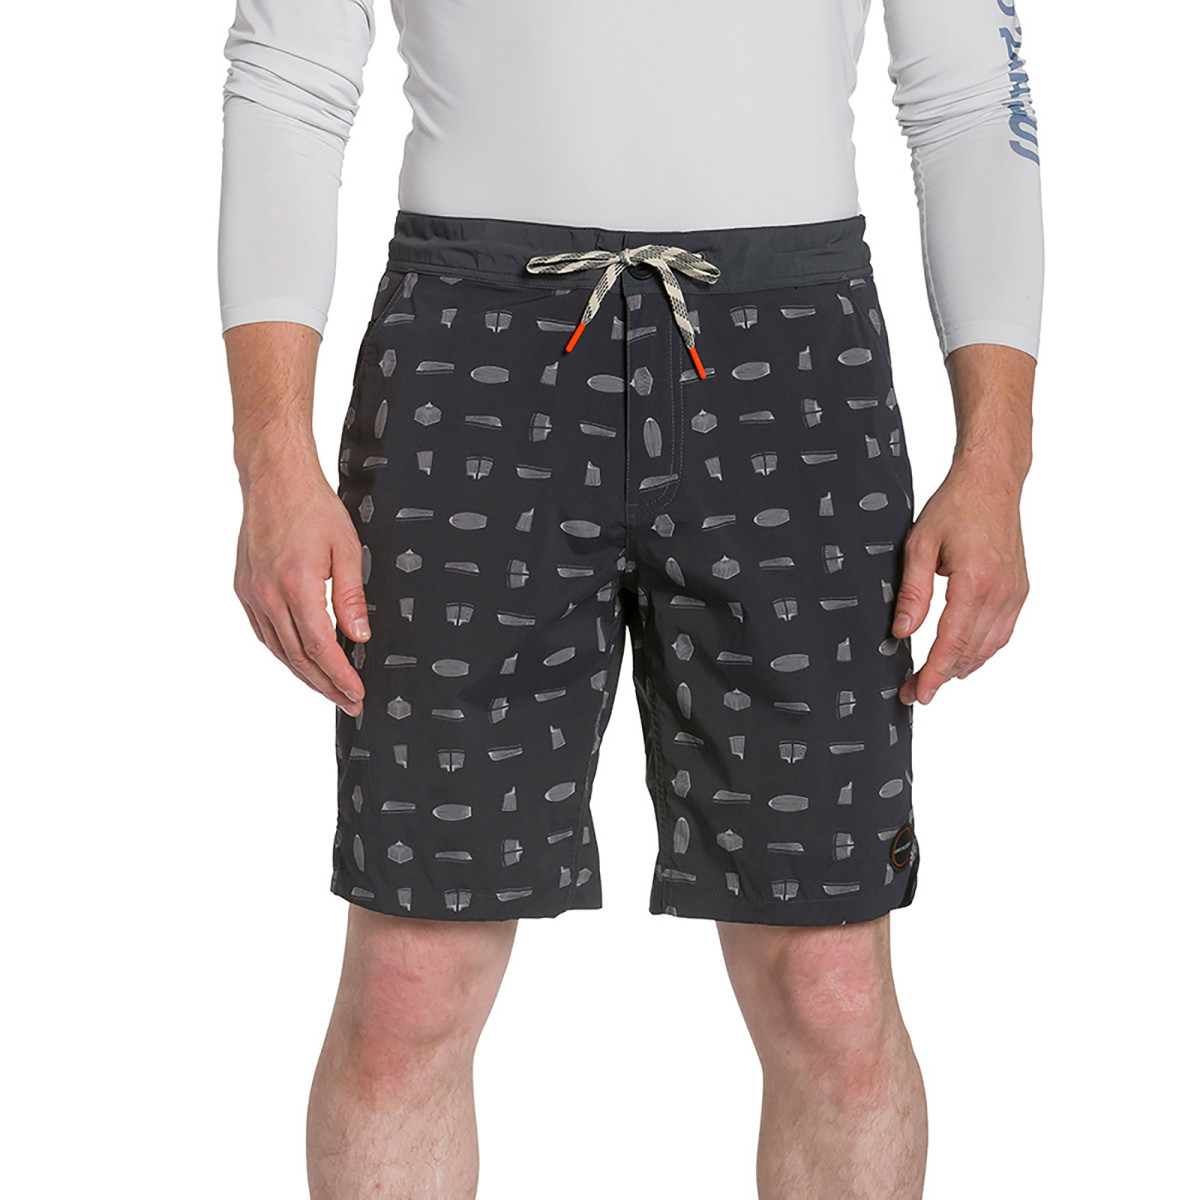 Men's boardshorts from the Grundéns NetSourced collection